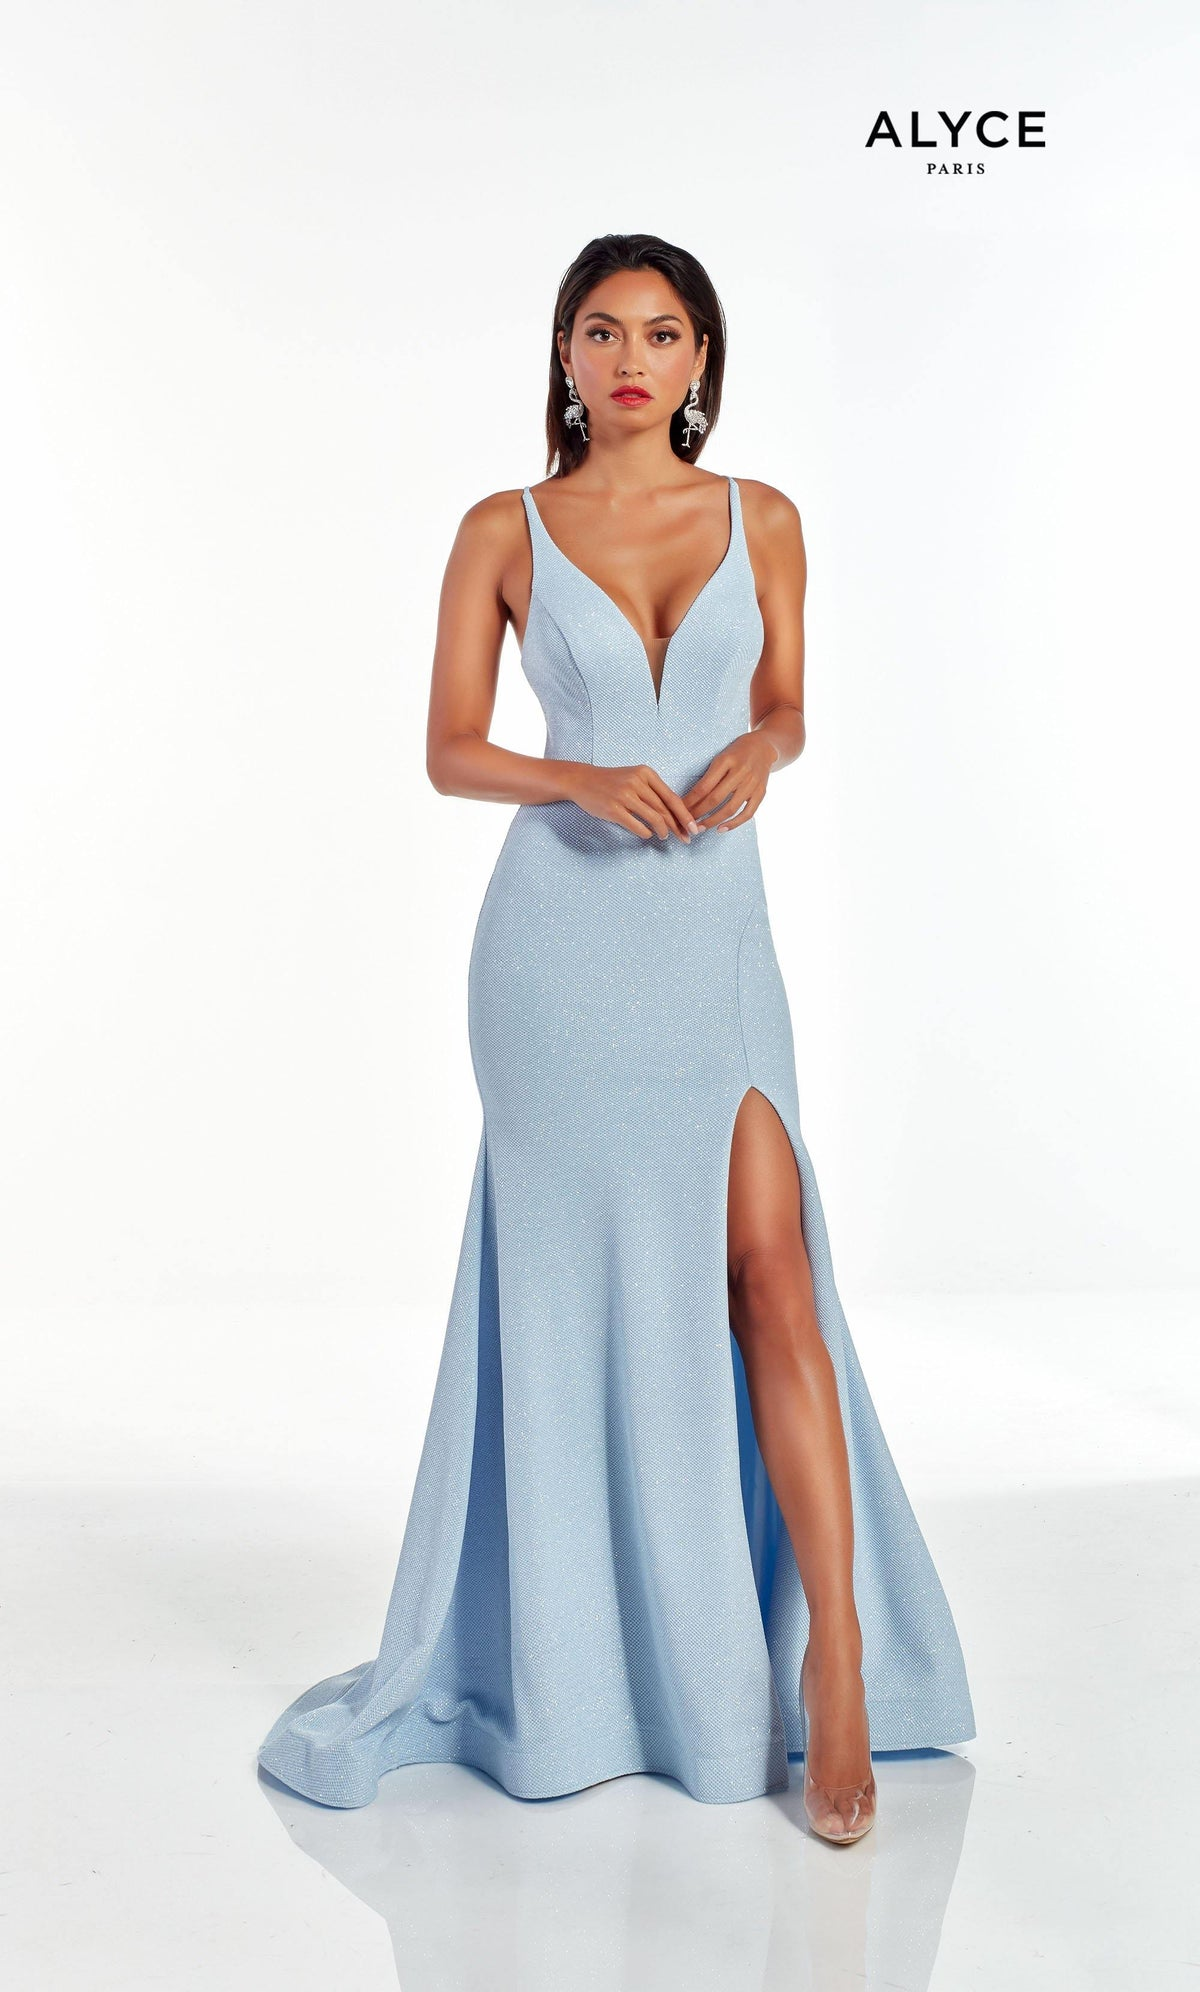 Glacier Blue prom dress with a plunging neckline and front slit